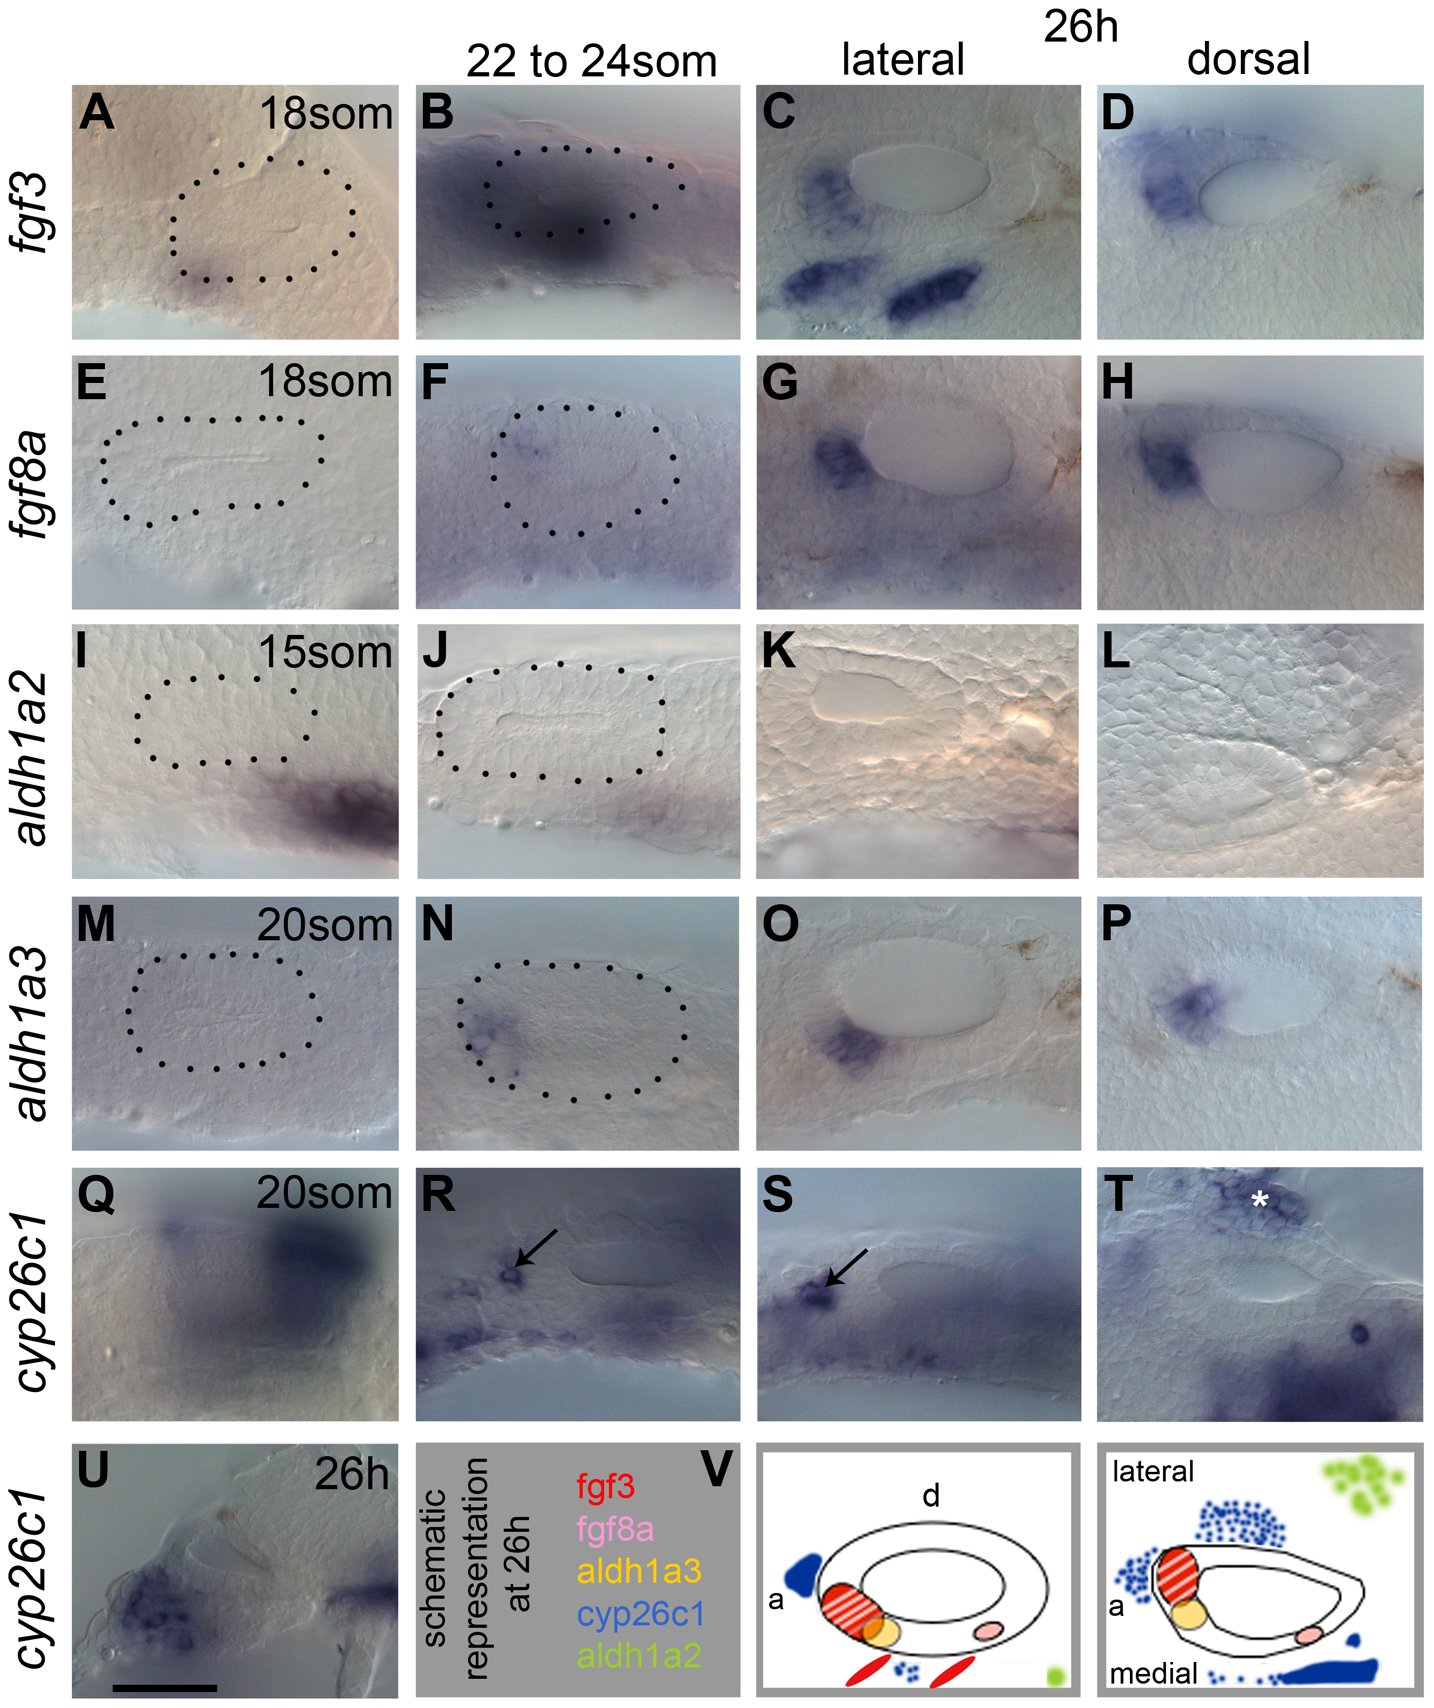 Expression of FGF and RA signalling pathway components during zebrafish OV development.